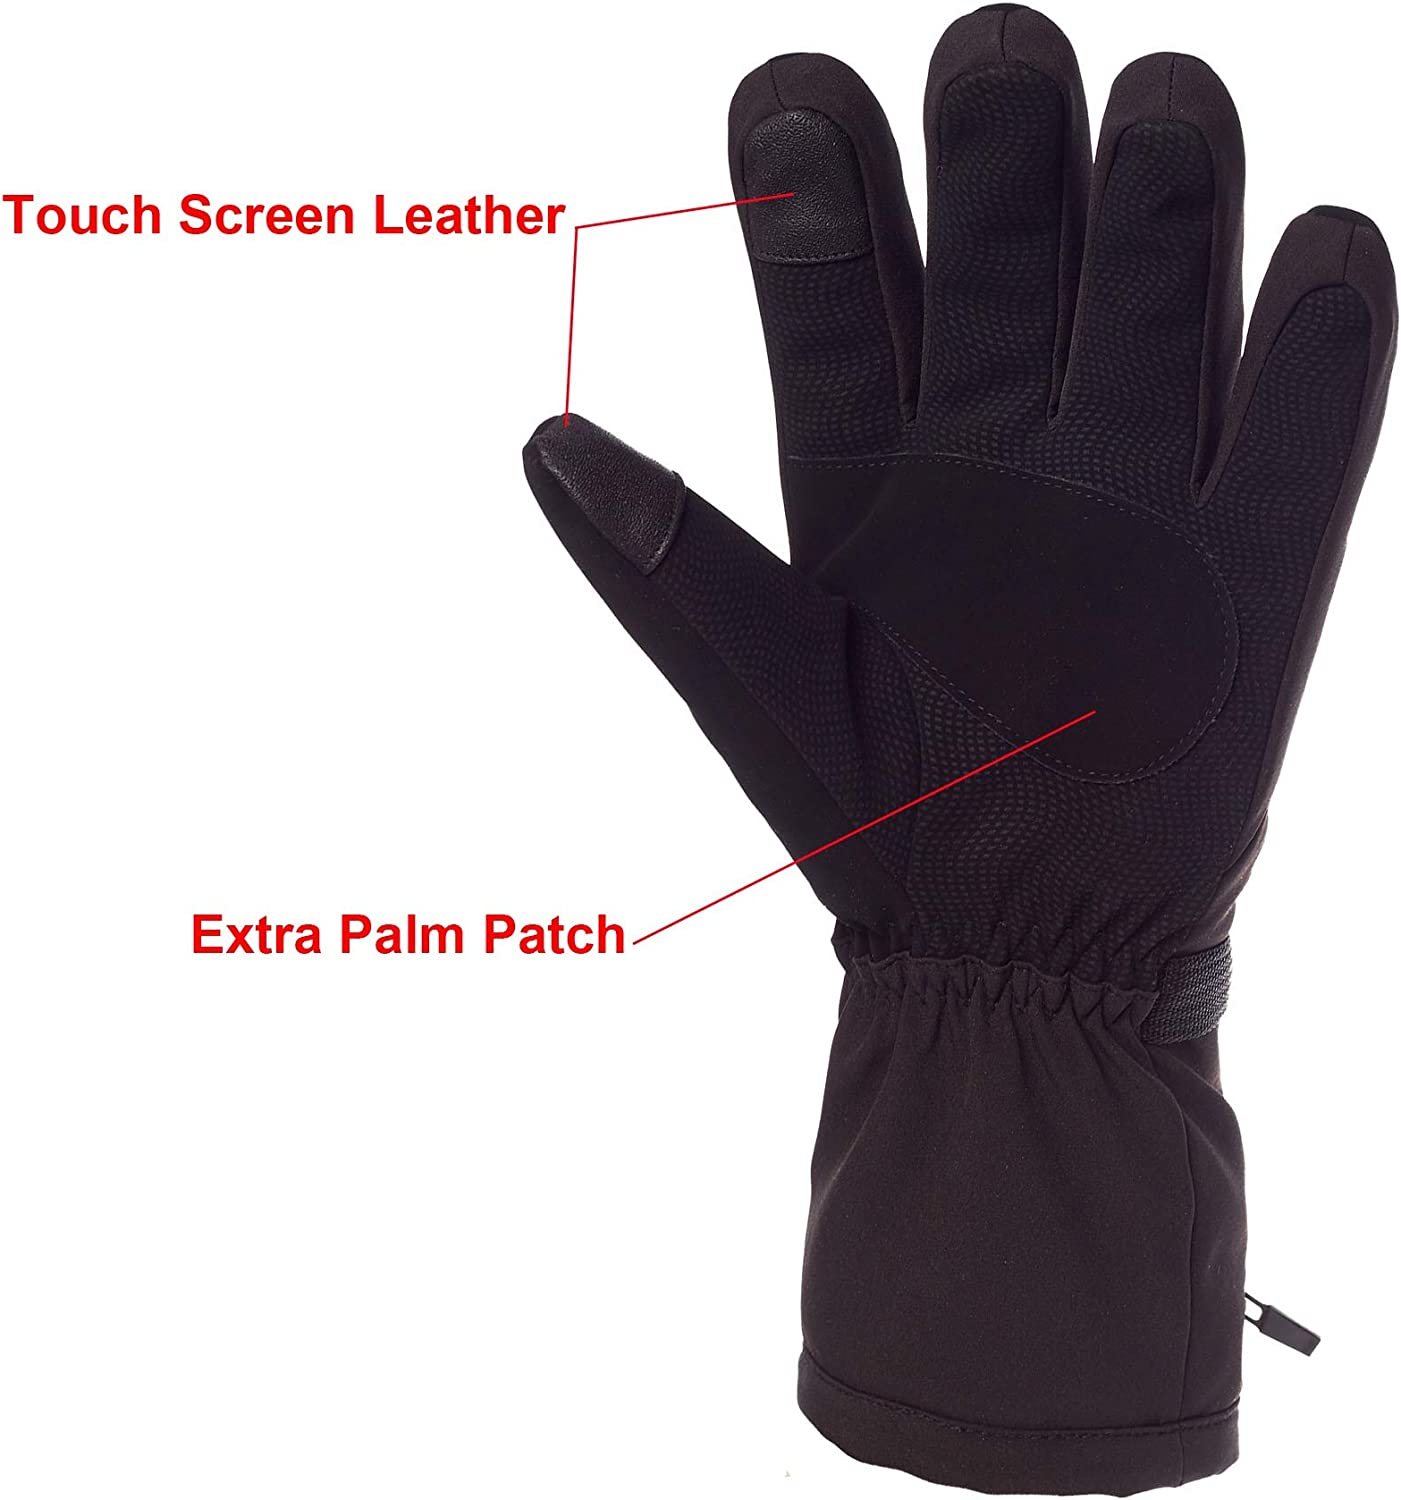 Power Heated Gloves Mens Electric Winter Thermal Ski snowboard Gloves 7.4V Rechargeable Battery Hand Warmers